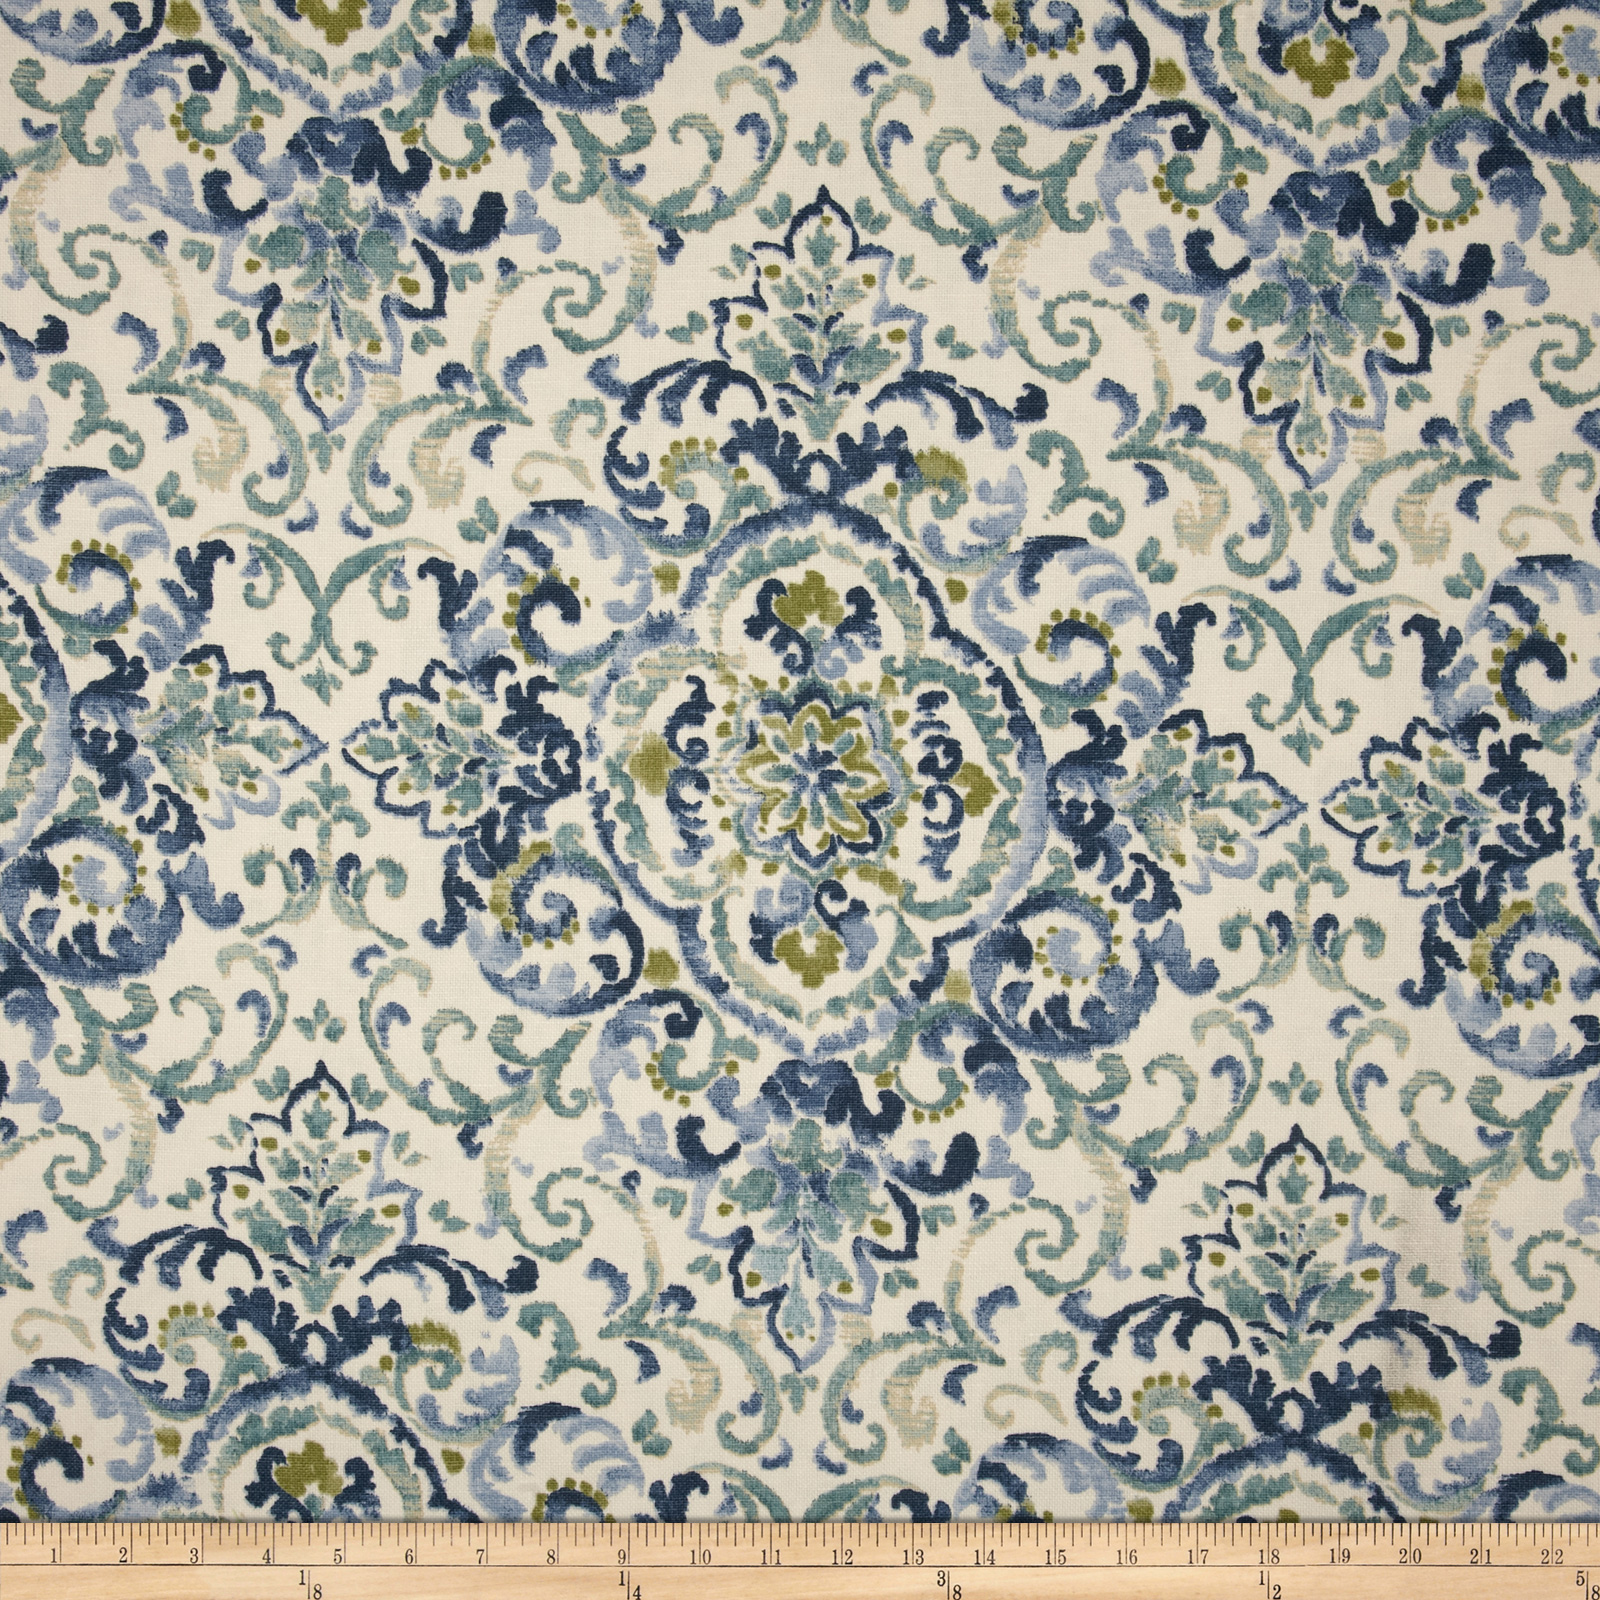 Duralee Home Quentin Damask Blue/Green Fabric